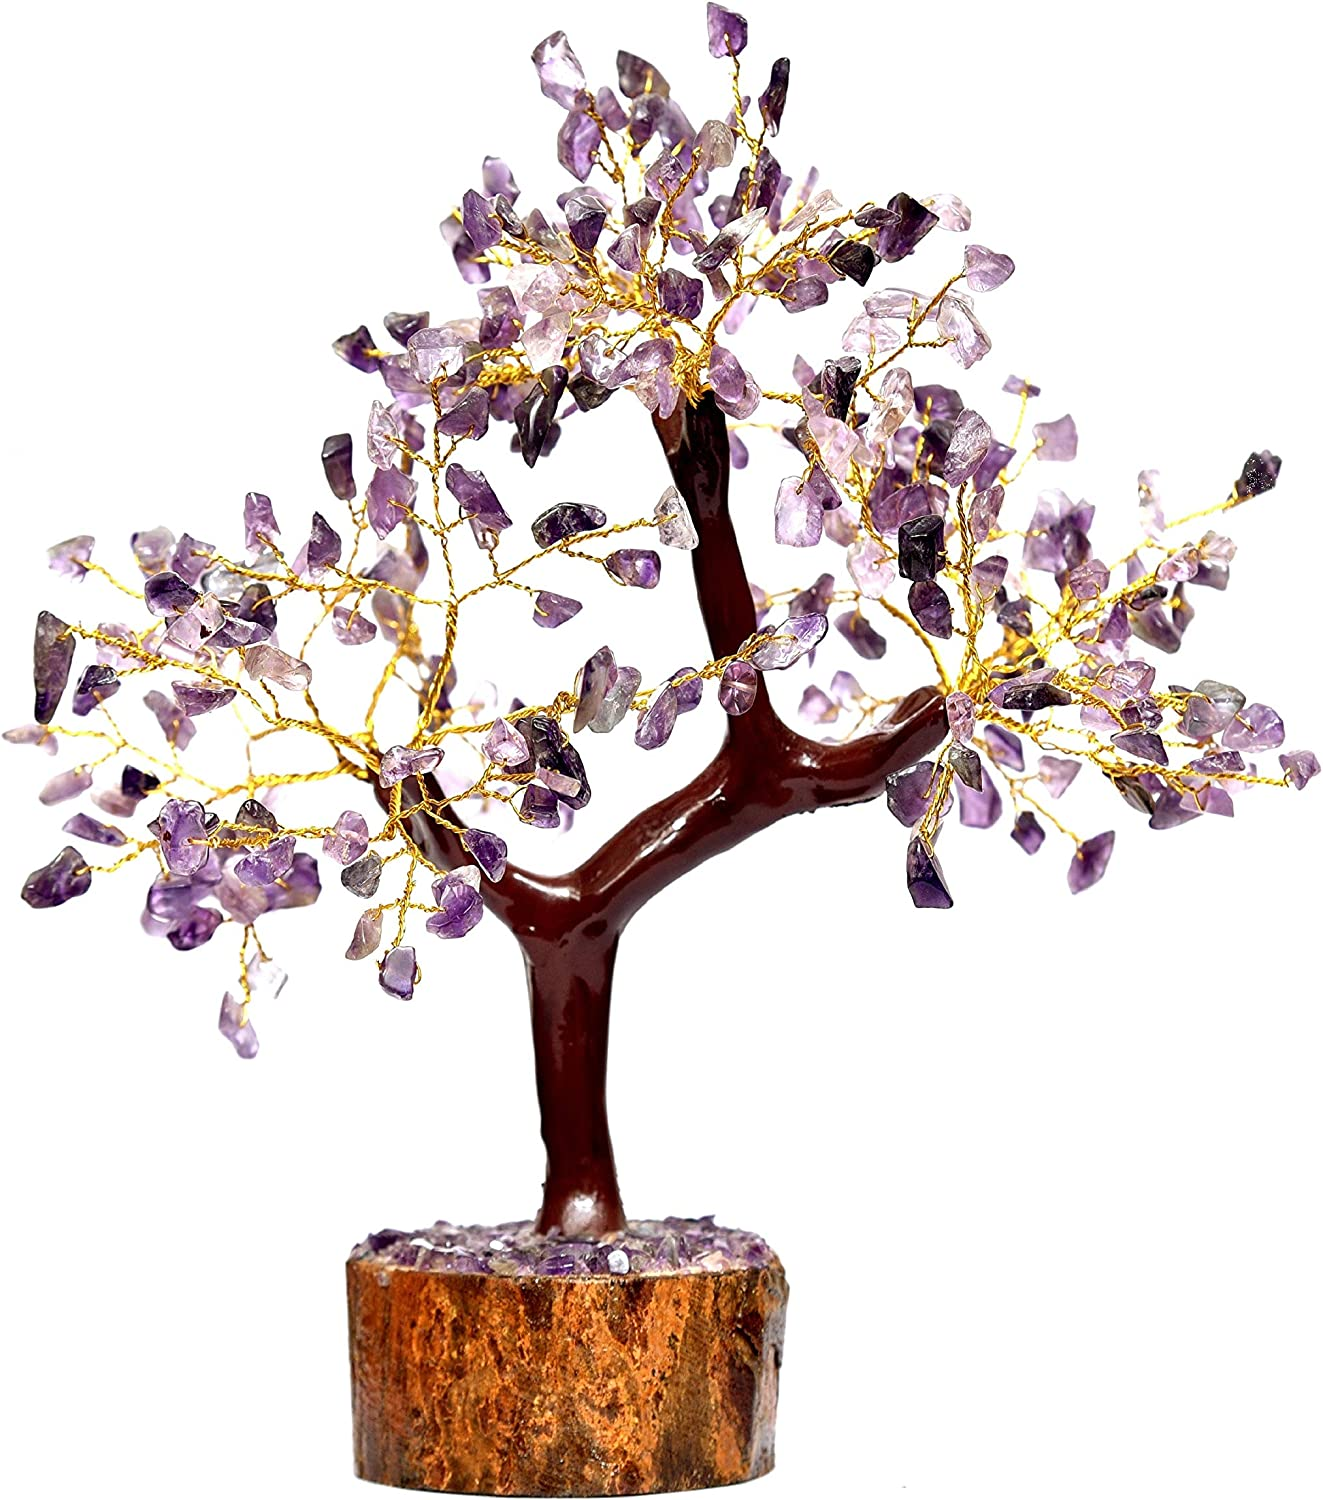 Crystals Healing Amethyst Gemstone Money Tree (Tree of Life Pendant Gift) Feng Shui Bonsai for Reiki, Energy Generator Spiritual Meditation Home Interior Office Decor Size 10-12 Inch in Gold Wire